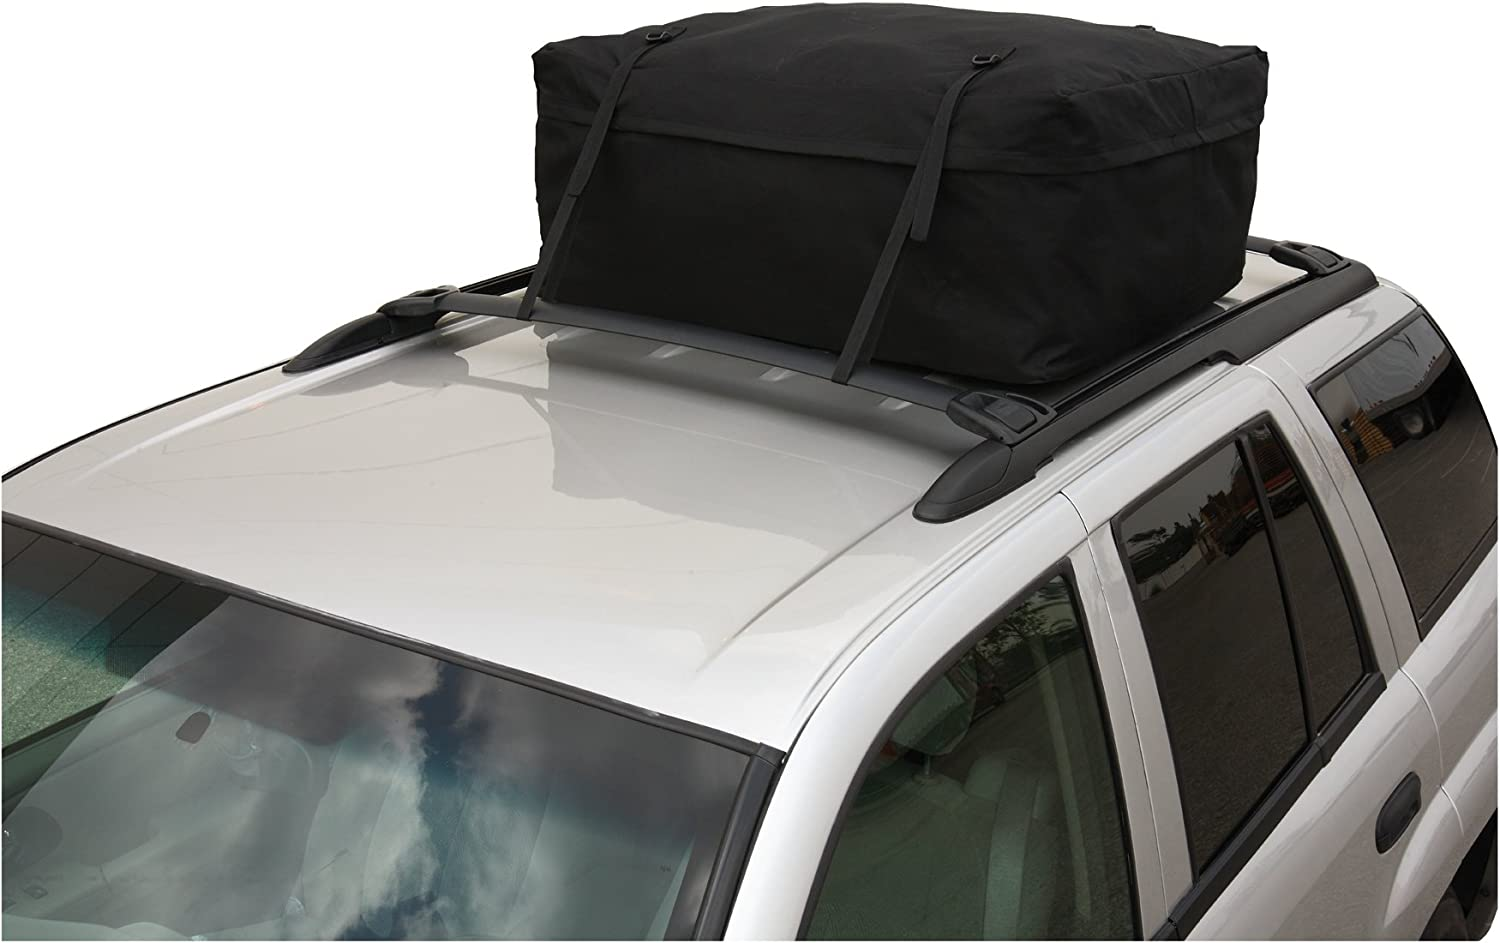 Ft 13 cu - Durable Utility Travel Bag for Road Trips and Overlanding Pilot CG-13 Weather Resistant Cargo Bag for Rooftop or Hitch Platform